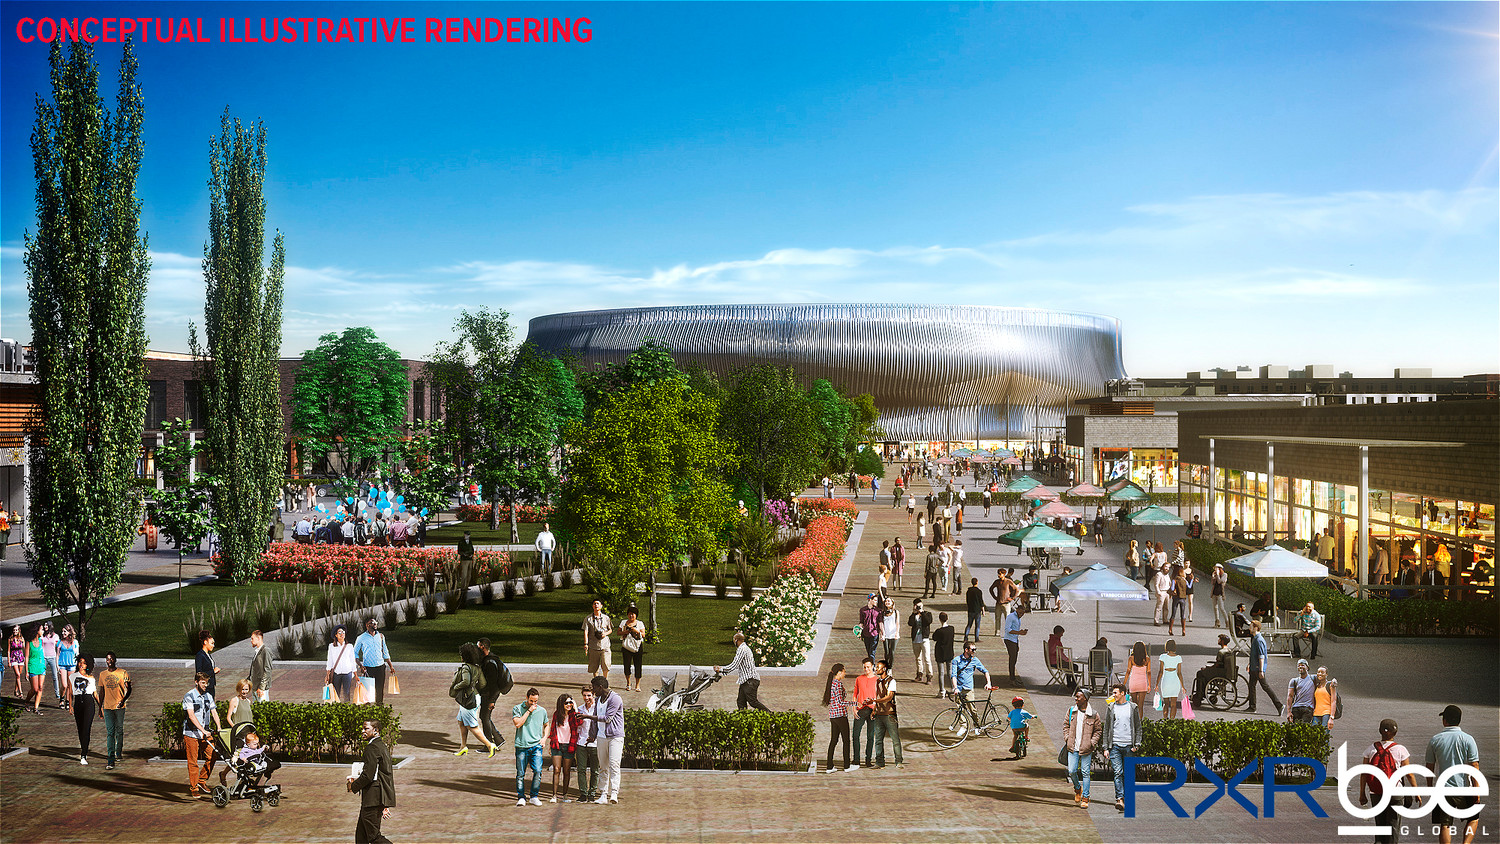 The proposed $1.5 billion commercial and residential plan to develop the land surrounding the Nassau Coliseum, known as the Nassau Hub aims to convert 60 acres of empty space into a walkable mixed-use downtown.